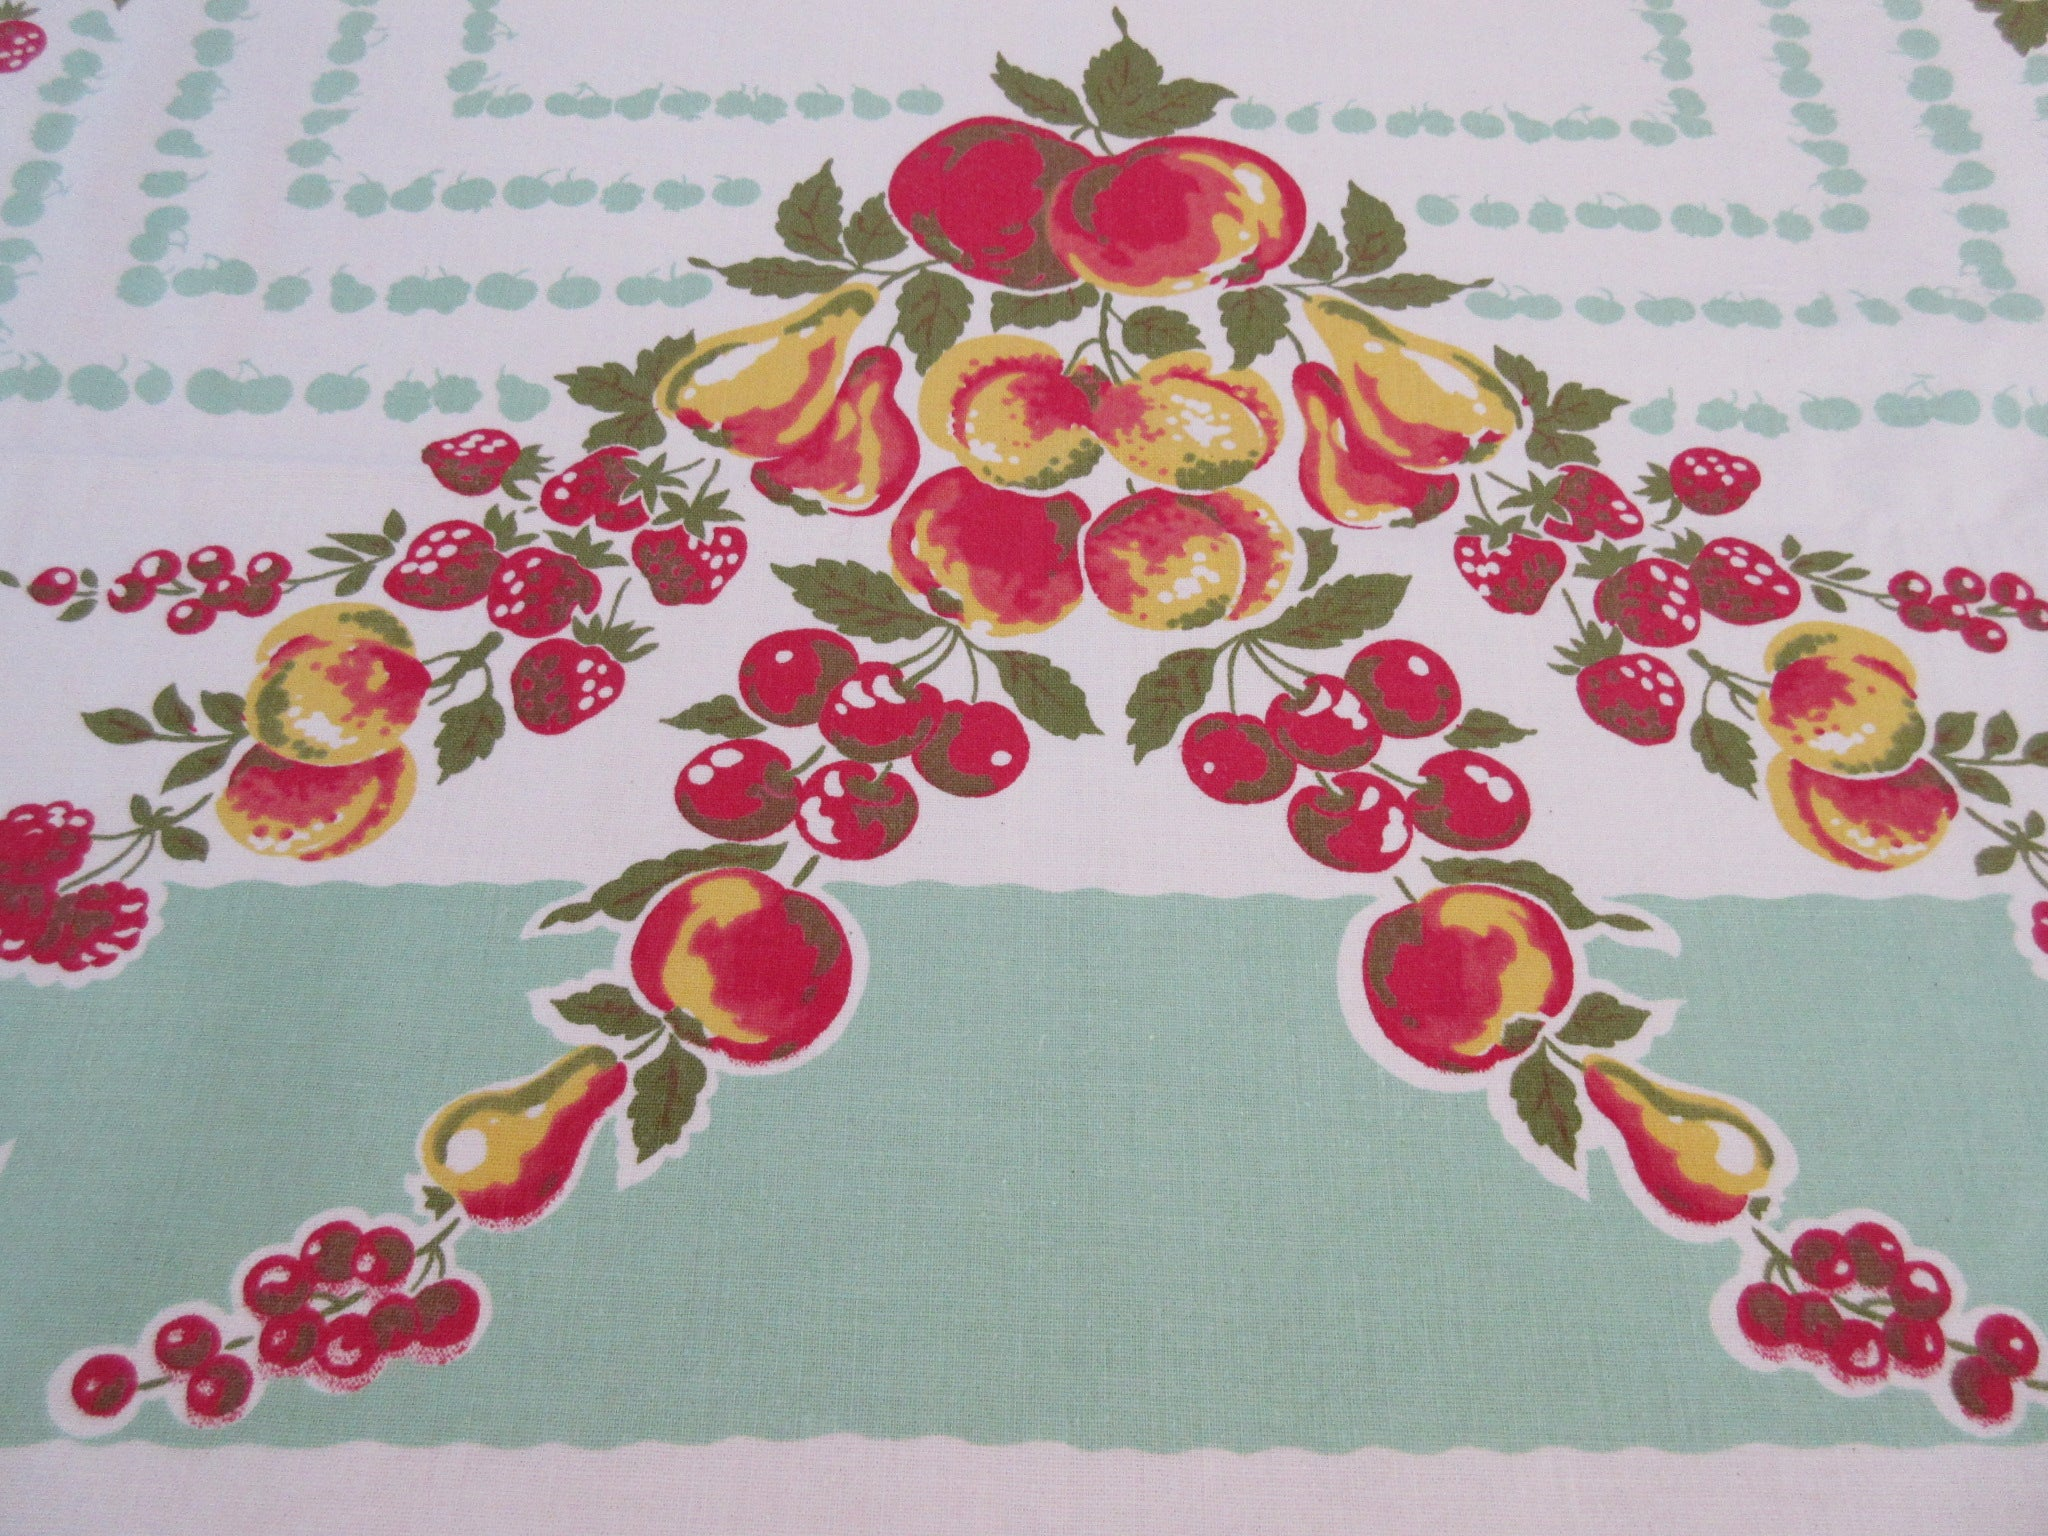 Great Fall Fruit on Jadite Vintage Printed Tablecloth (51 X 47)